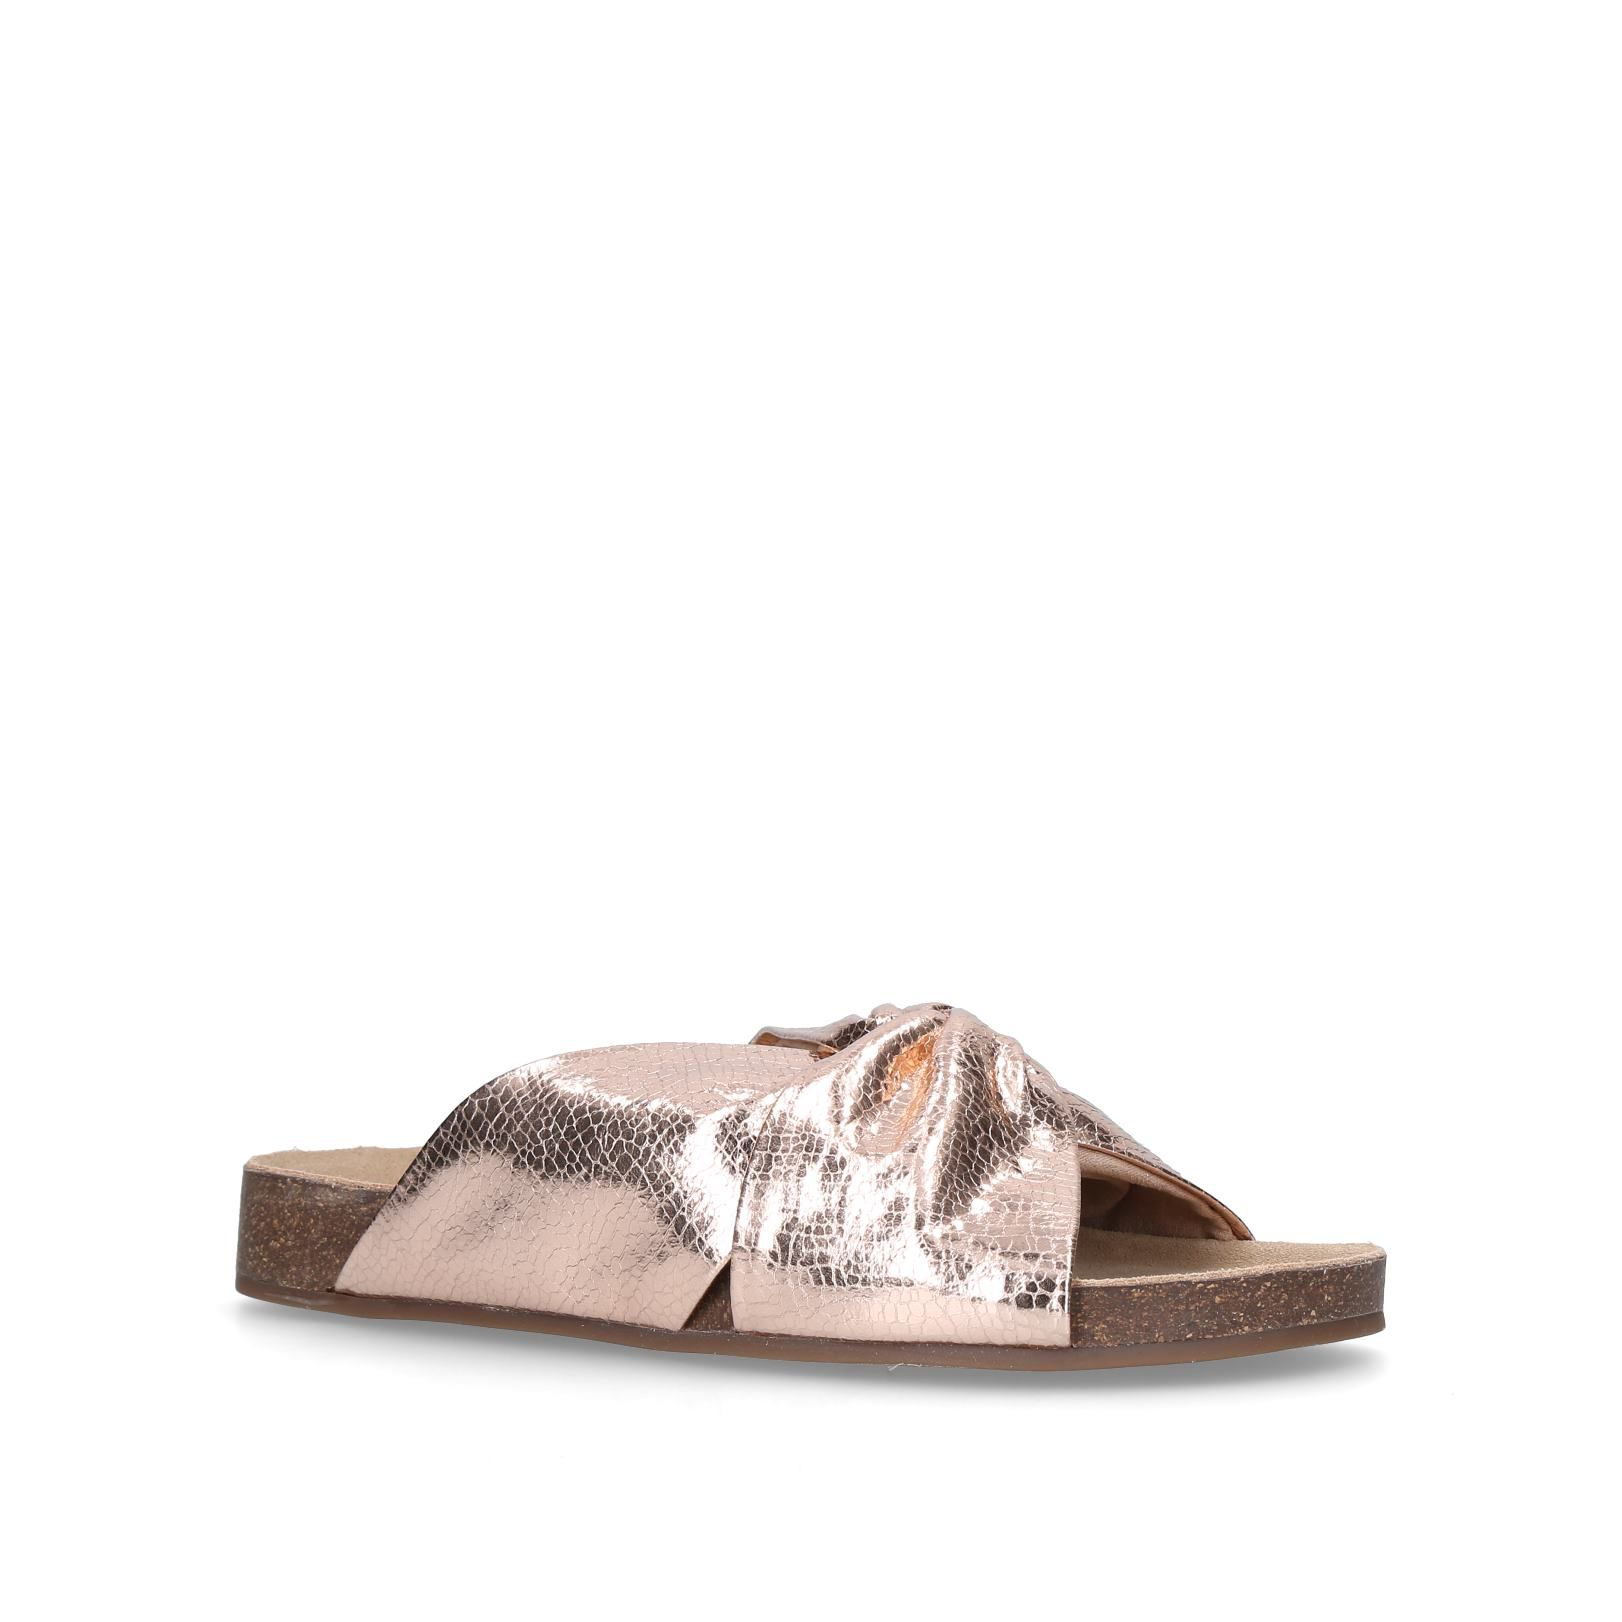 Vince Camuto Biminti Sandals, Rose Gold